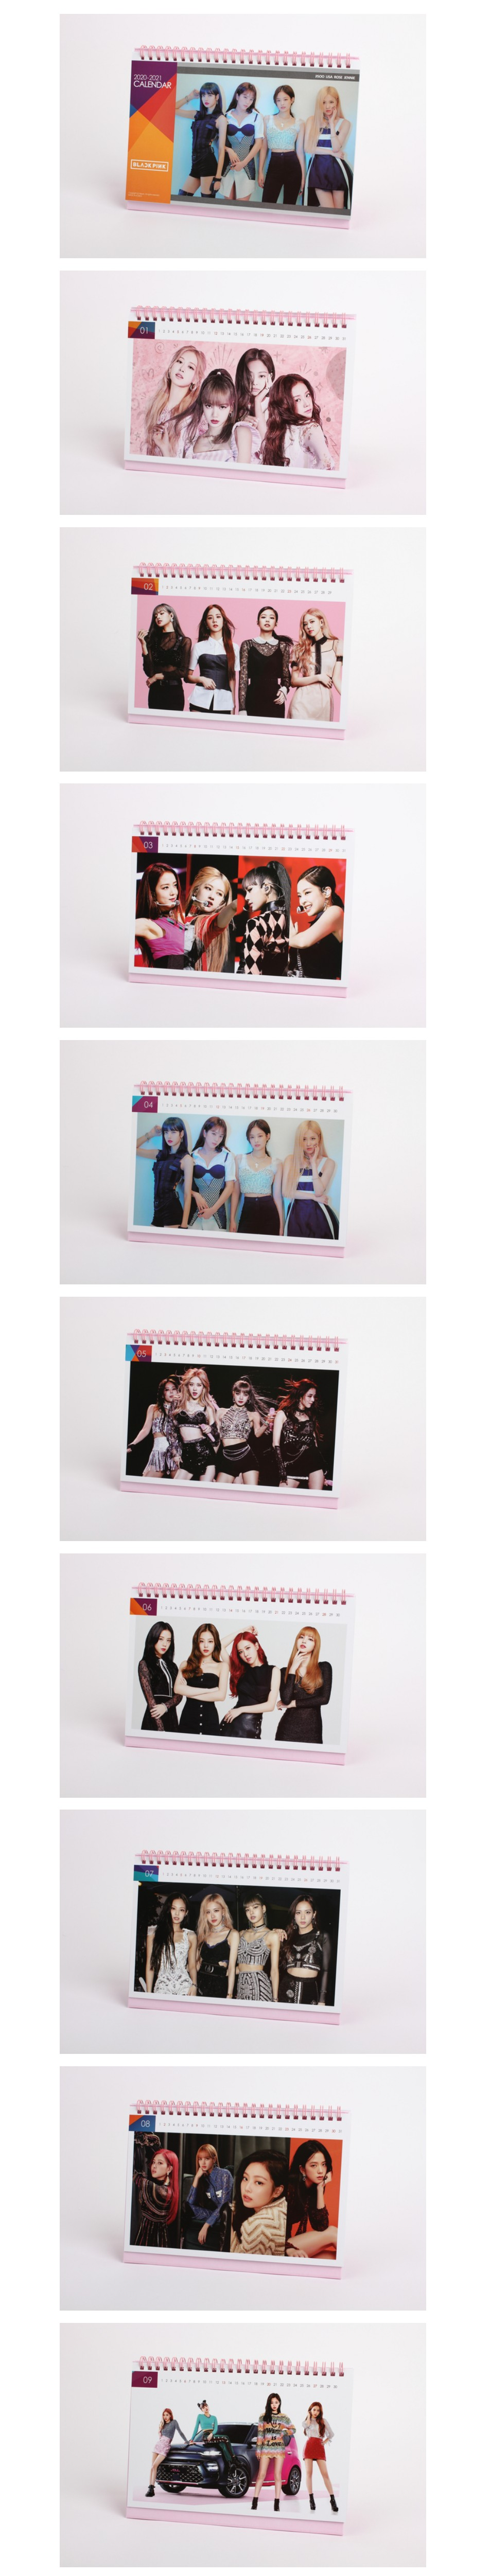 BLACKPINK - 2020-2021 Desk Calendar